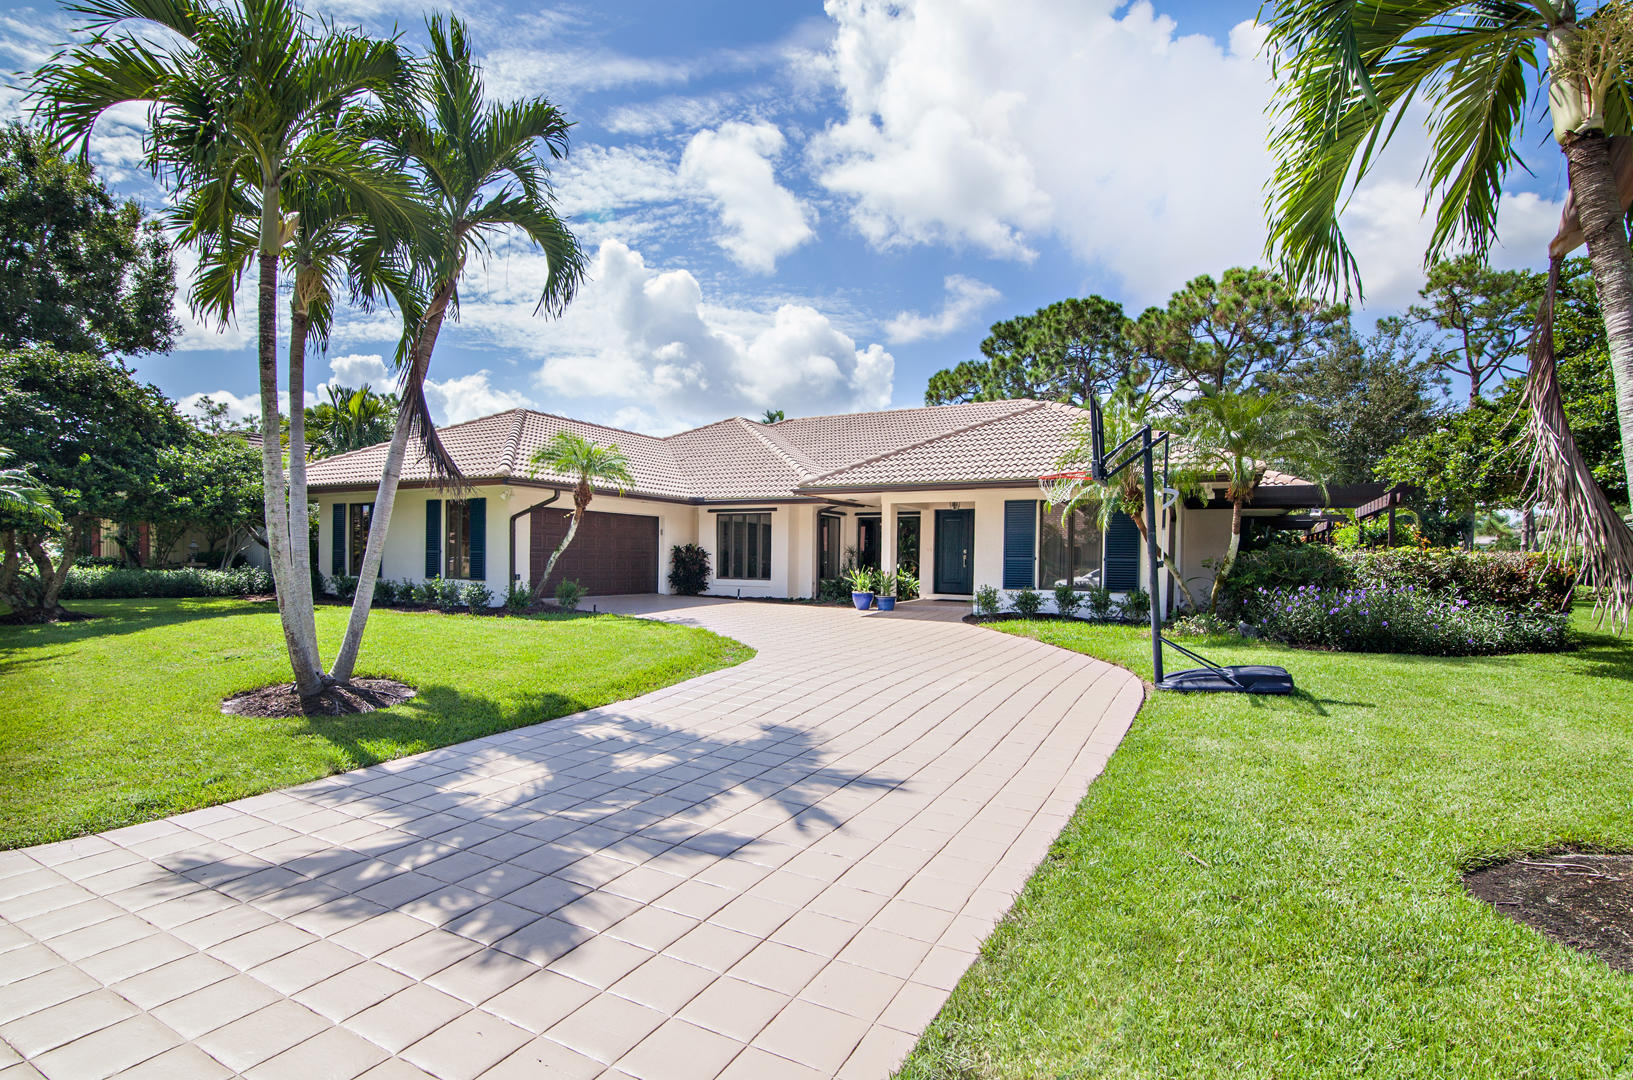 Home for sale in Pga National Resort Community Palm Beach Gardens Florida